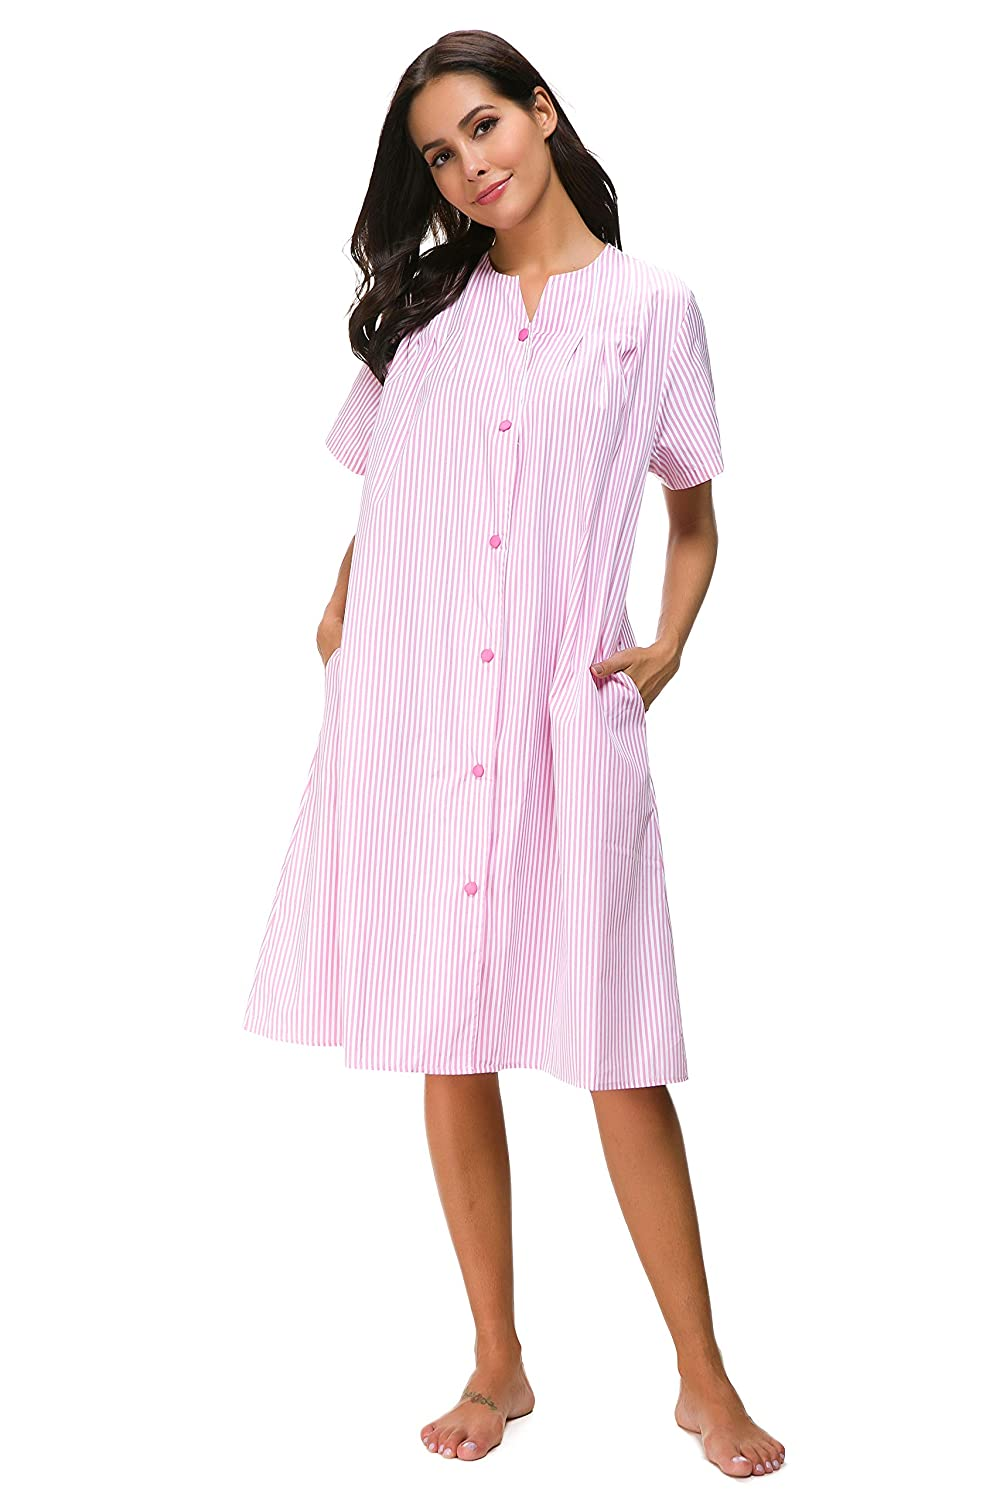 M-anxiu Sleepwear Womens Stripe Nightgown Button Down Duster Short Sleeve  House Dress S-XXL at Amazon Women s Clothing store  6250211d0